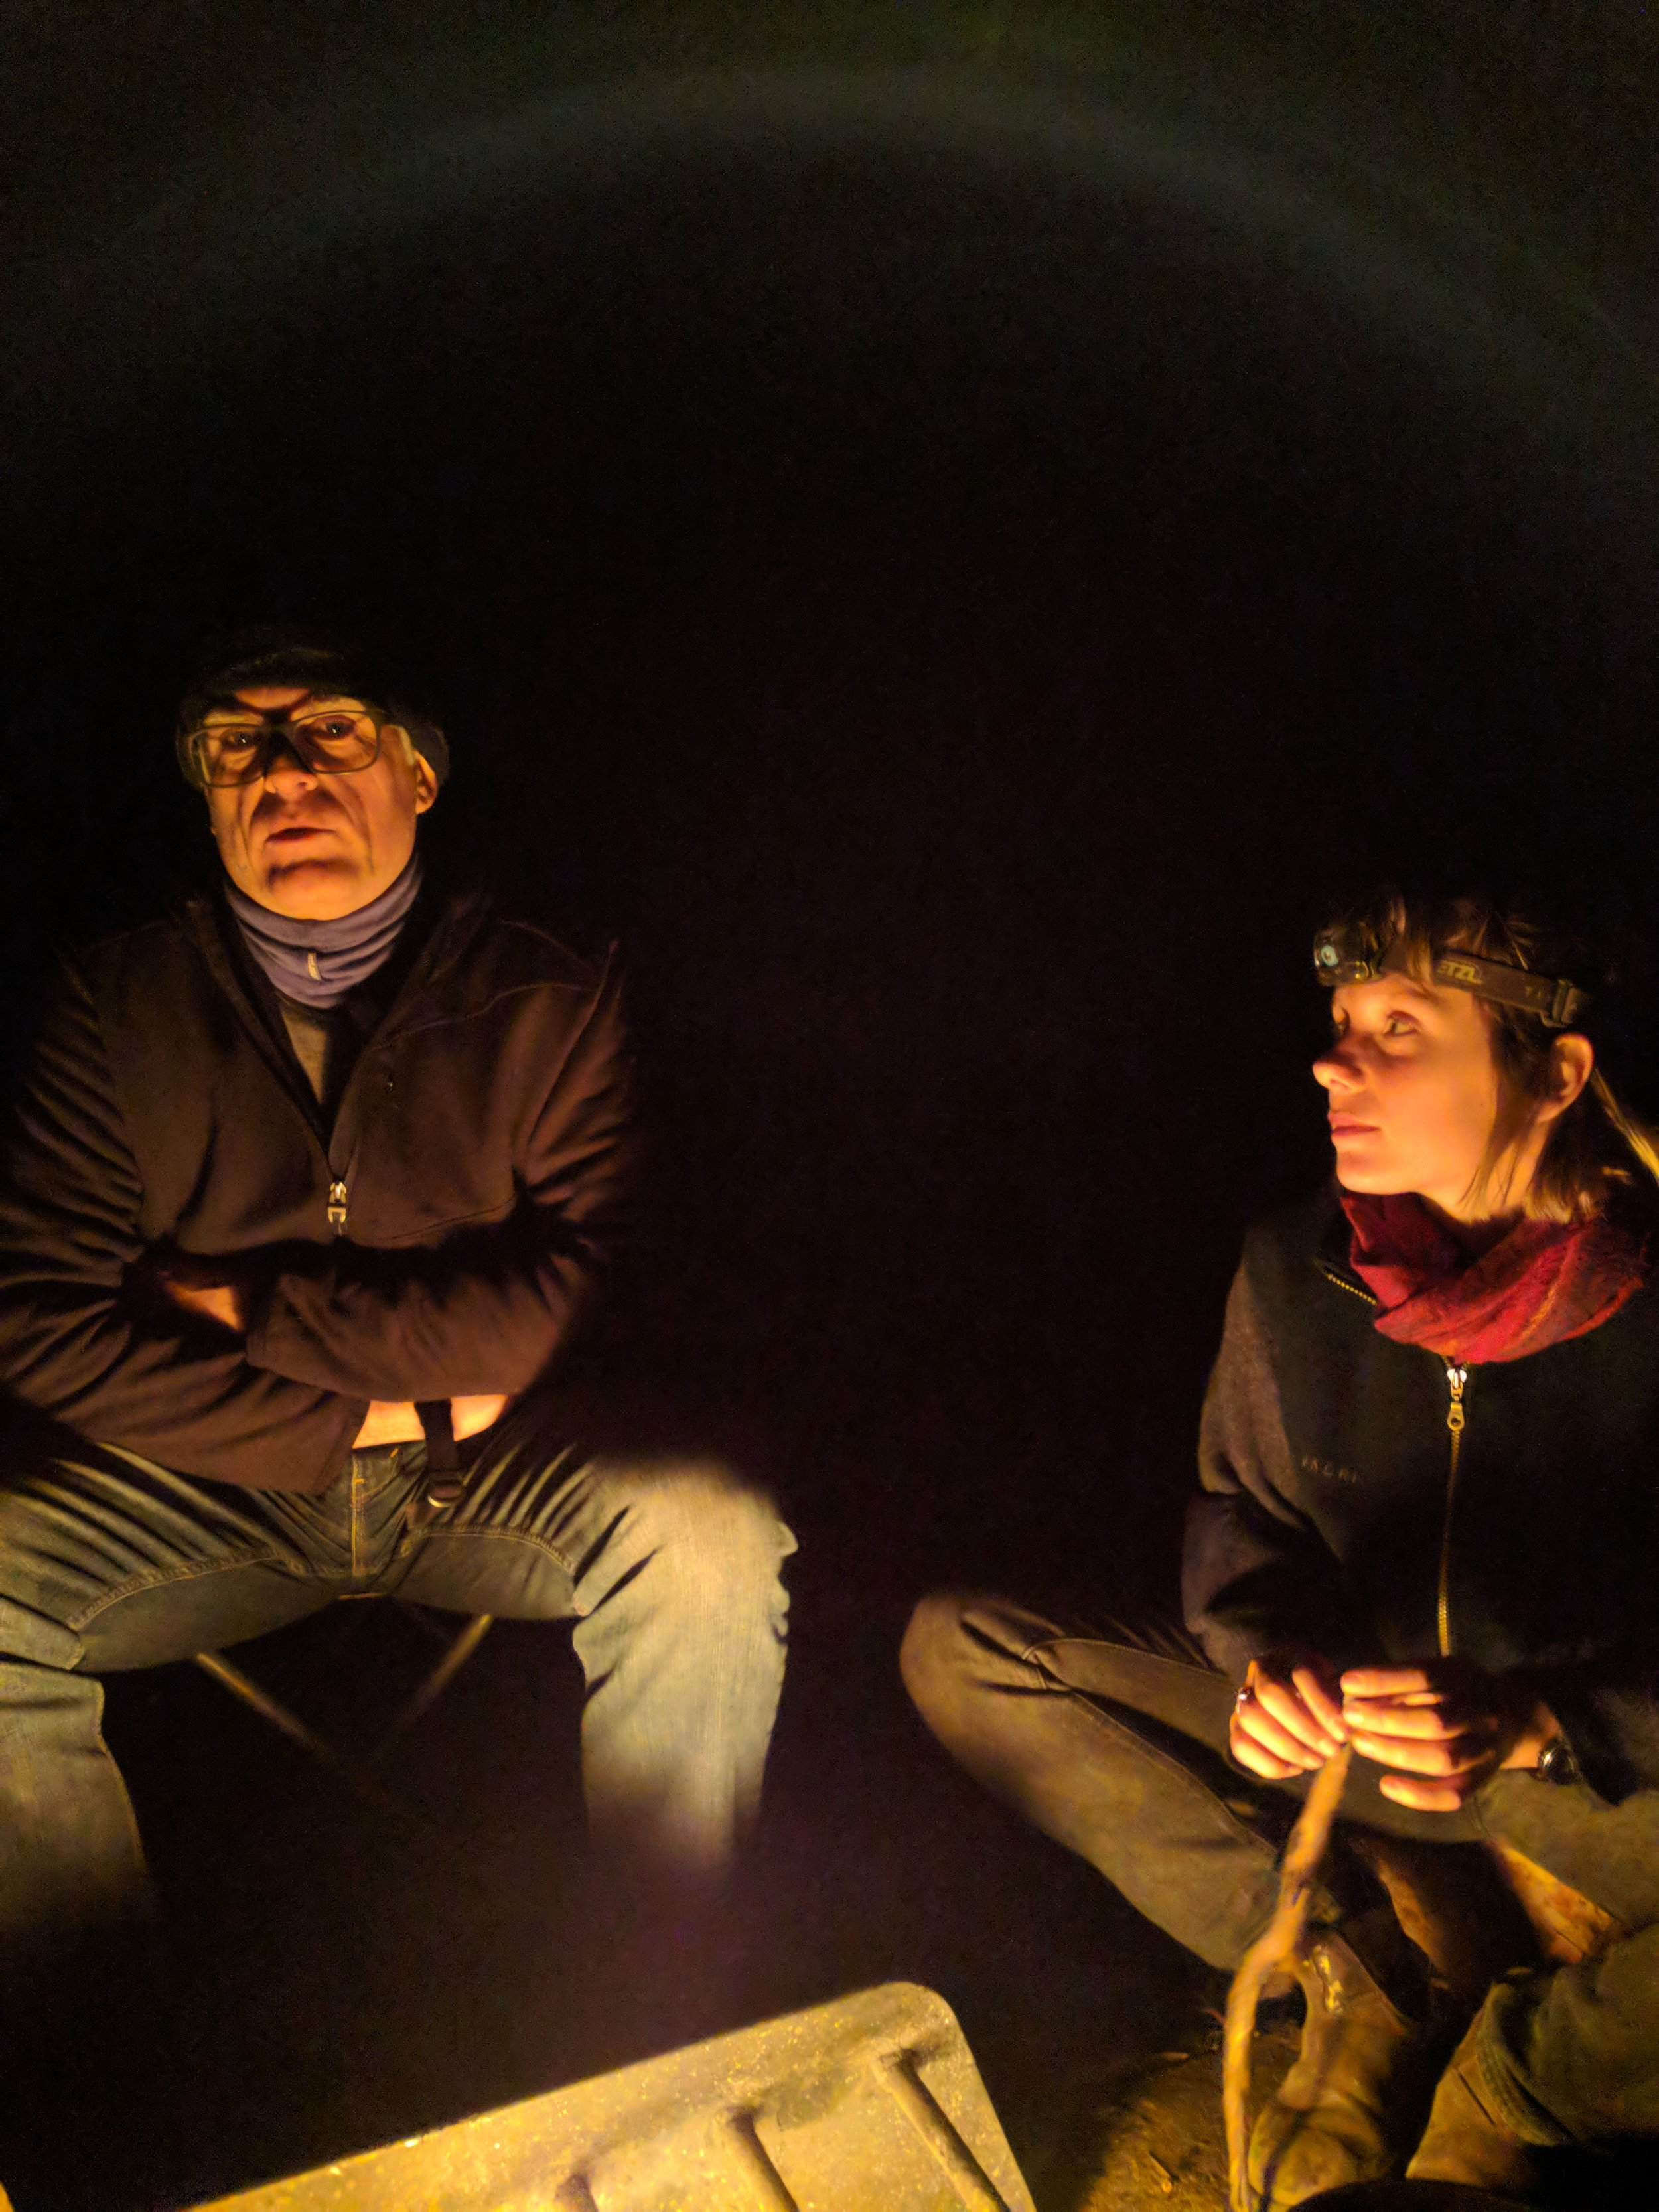 The excellent David Havercroft by firelight